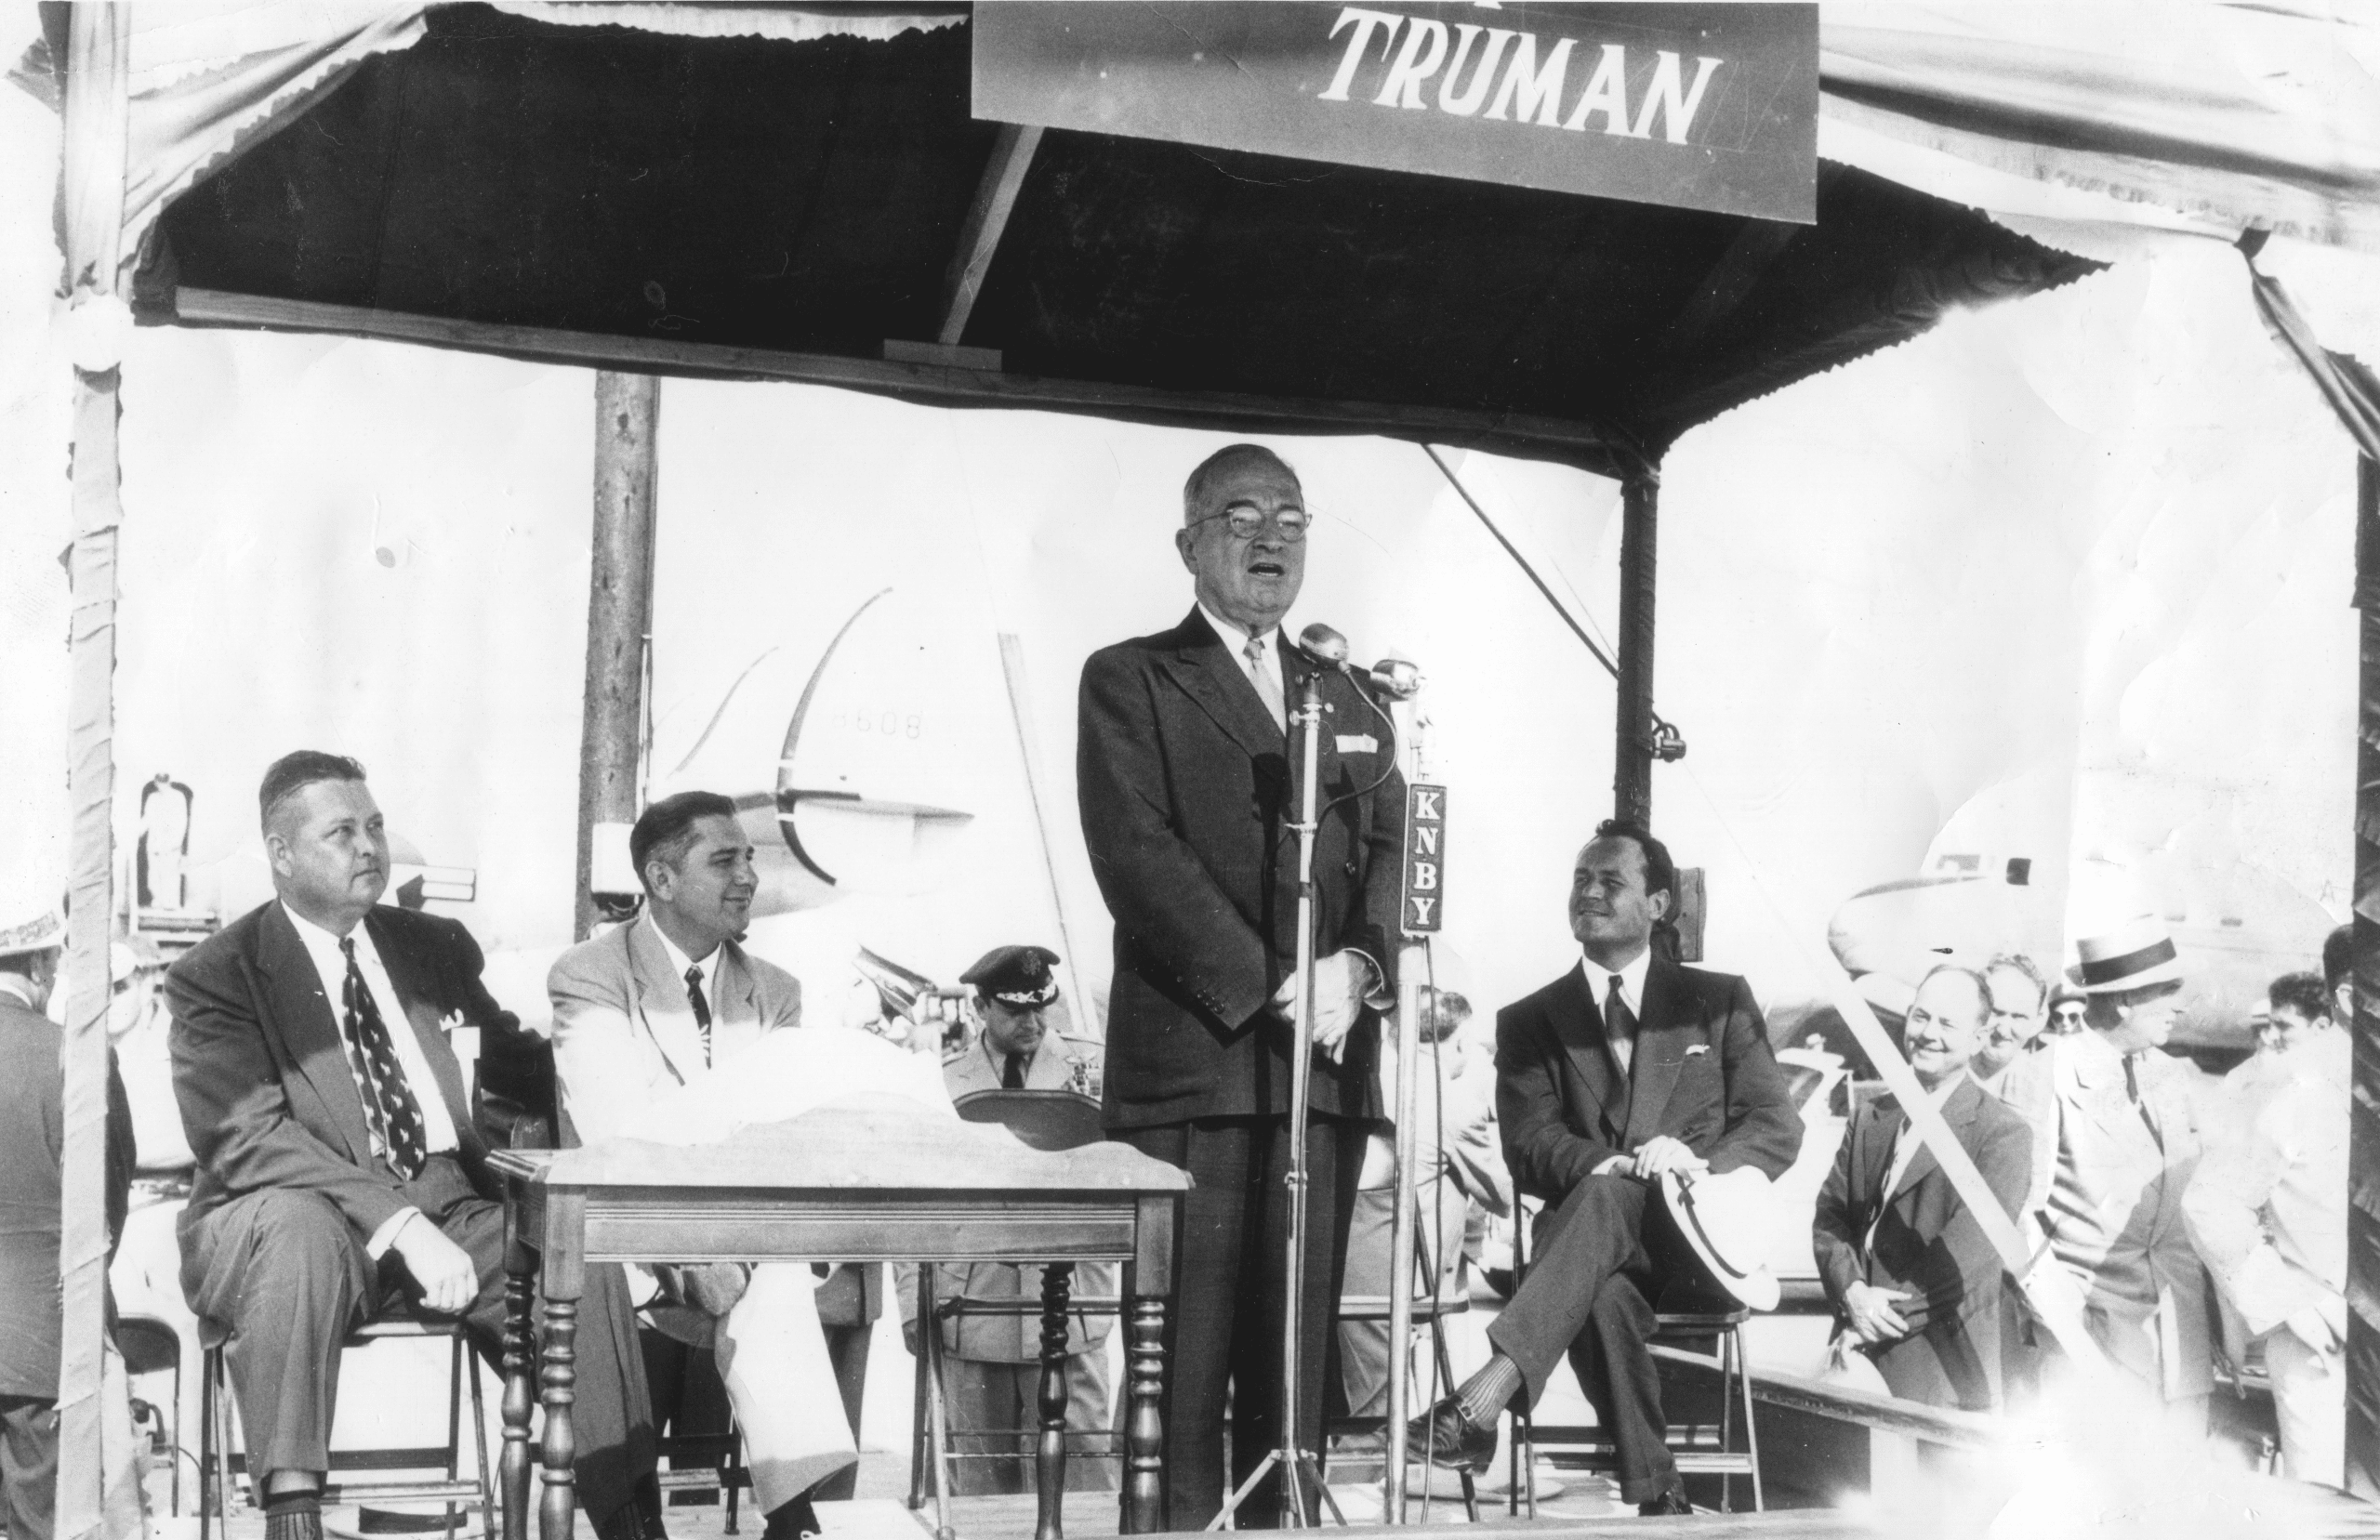 1952 – President Truman speaks in Newport